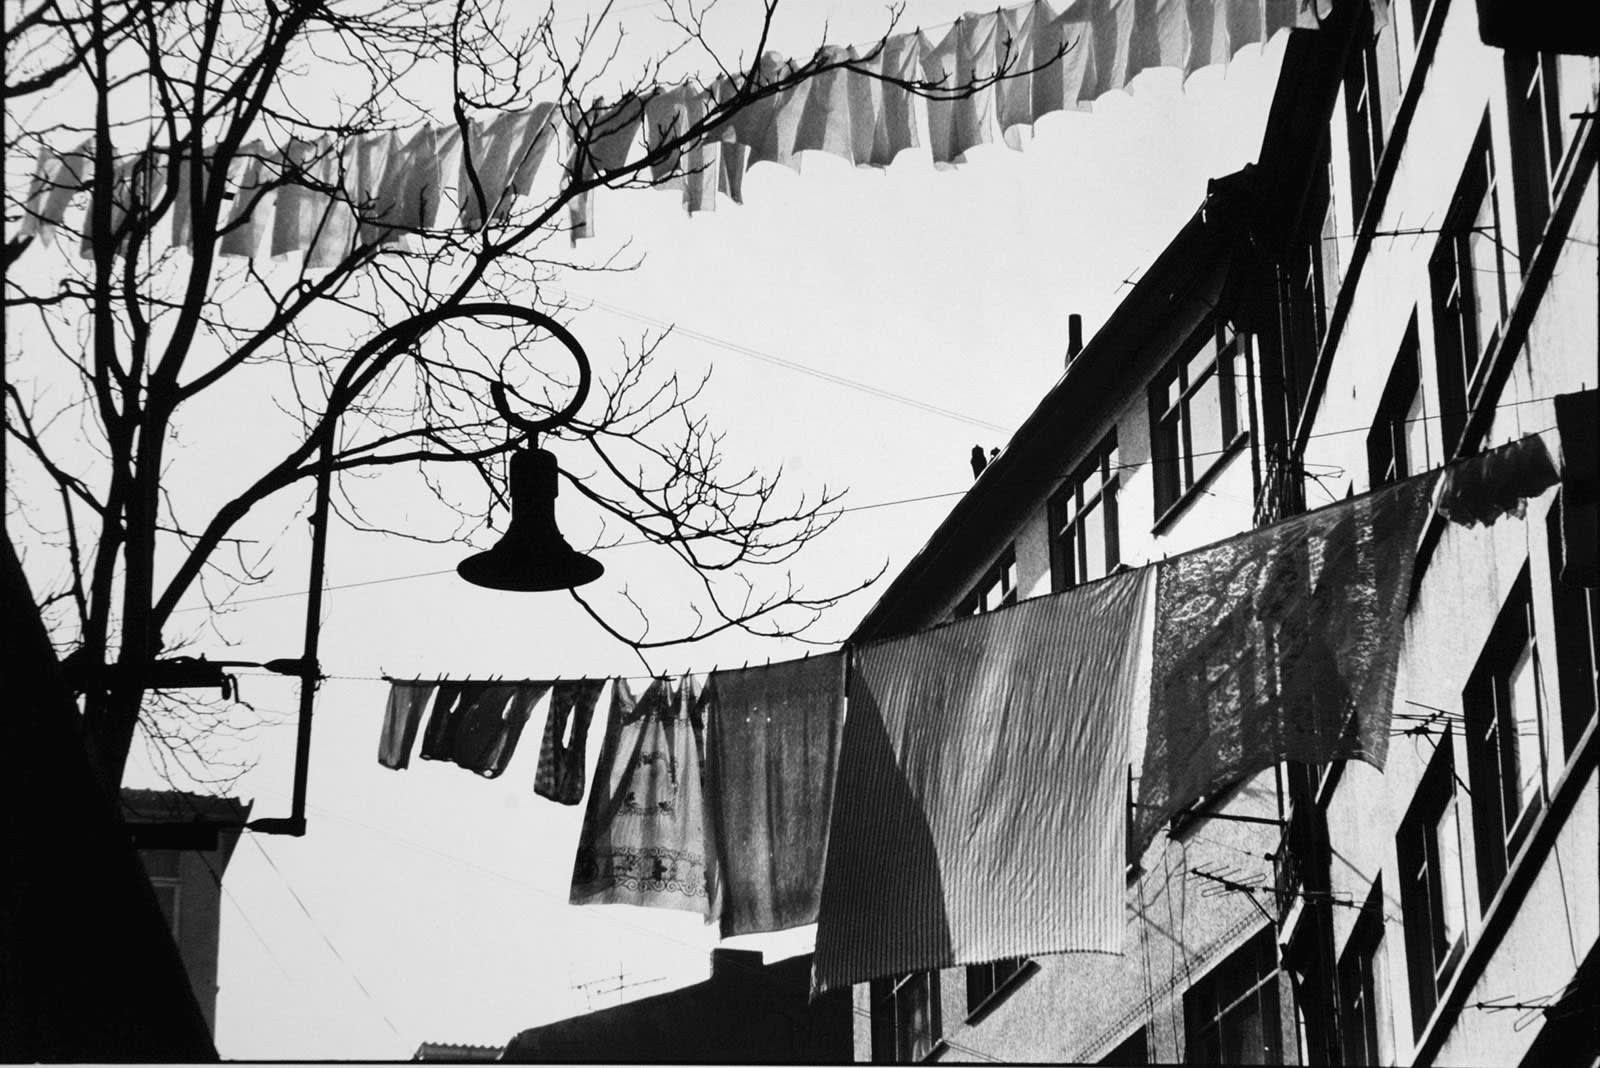 Sabine Weiss, Istanbul, Turquie, 1982